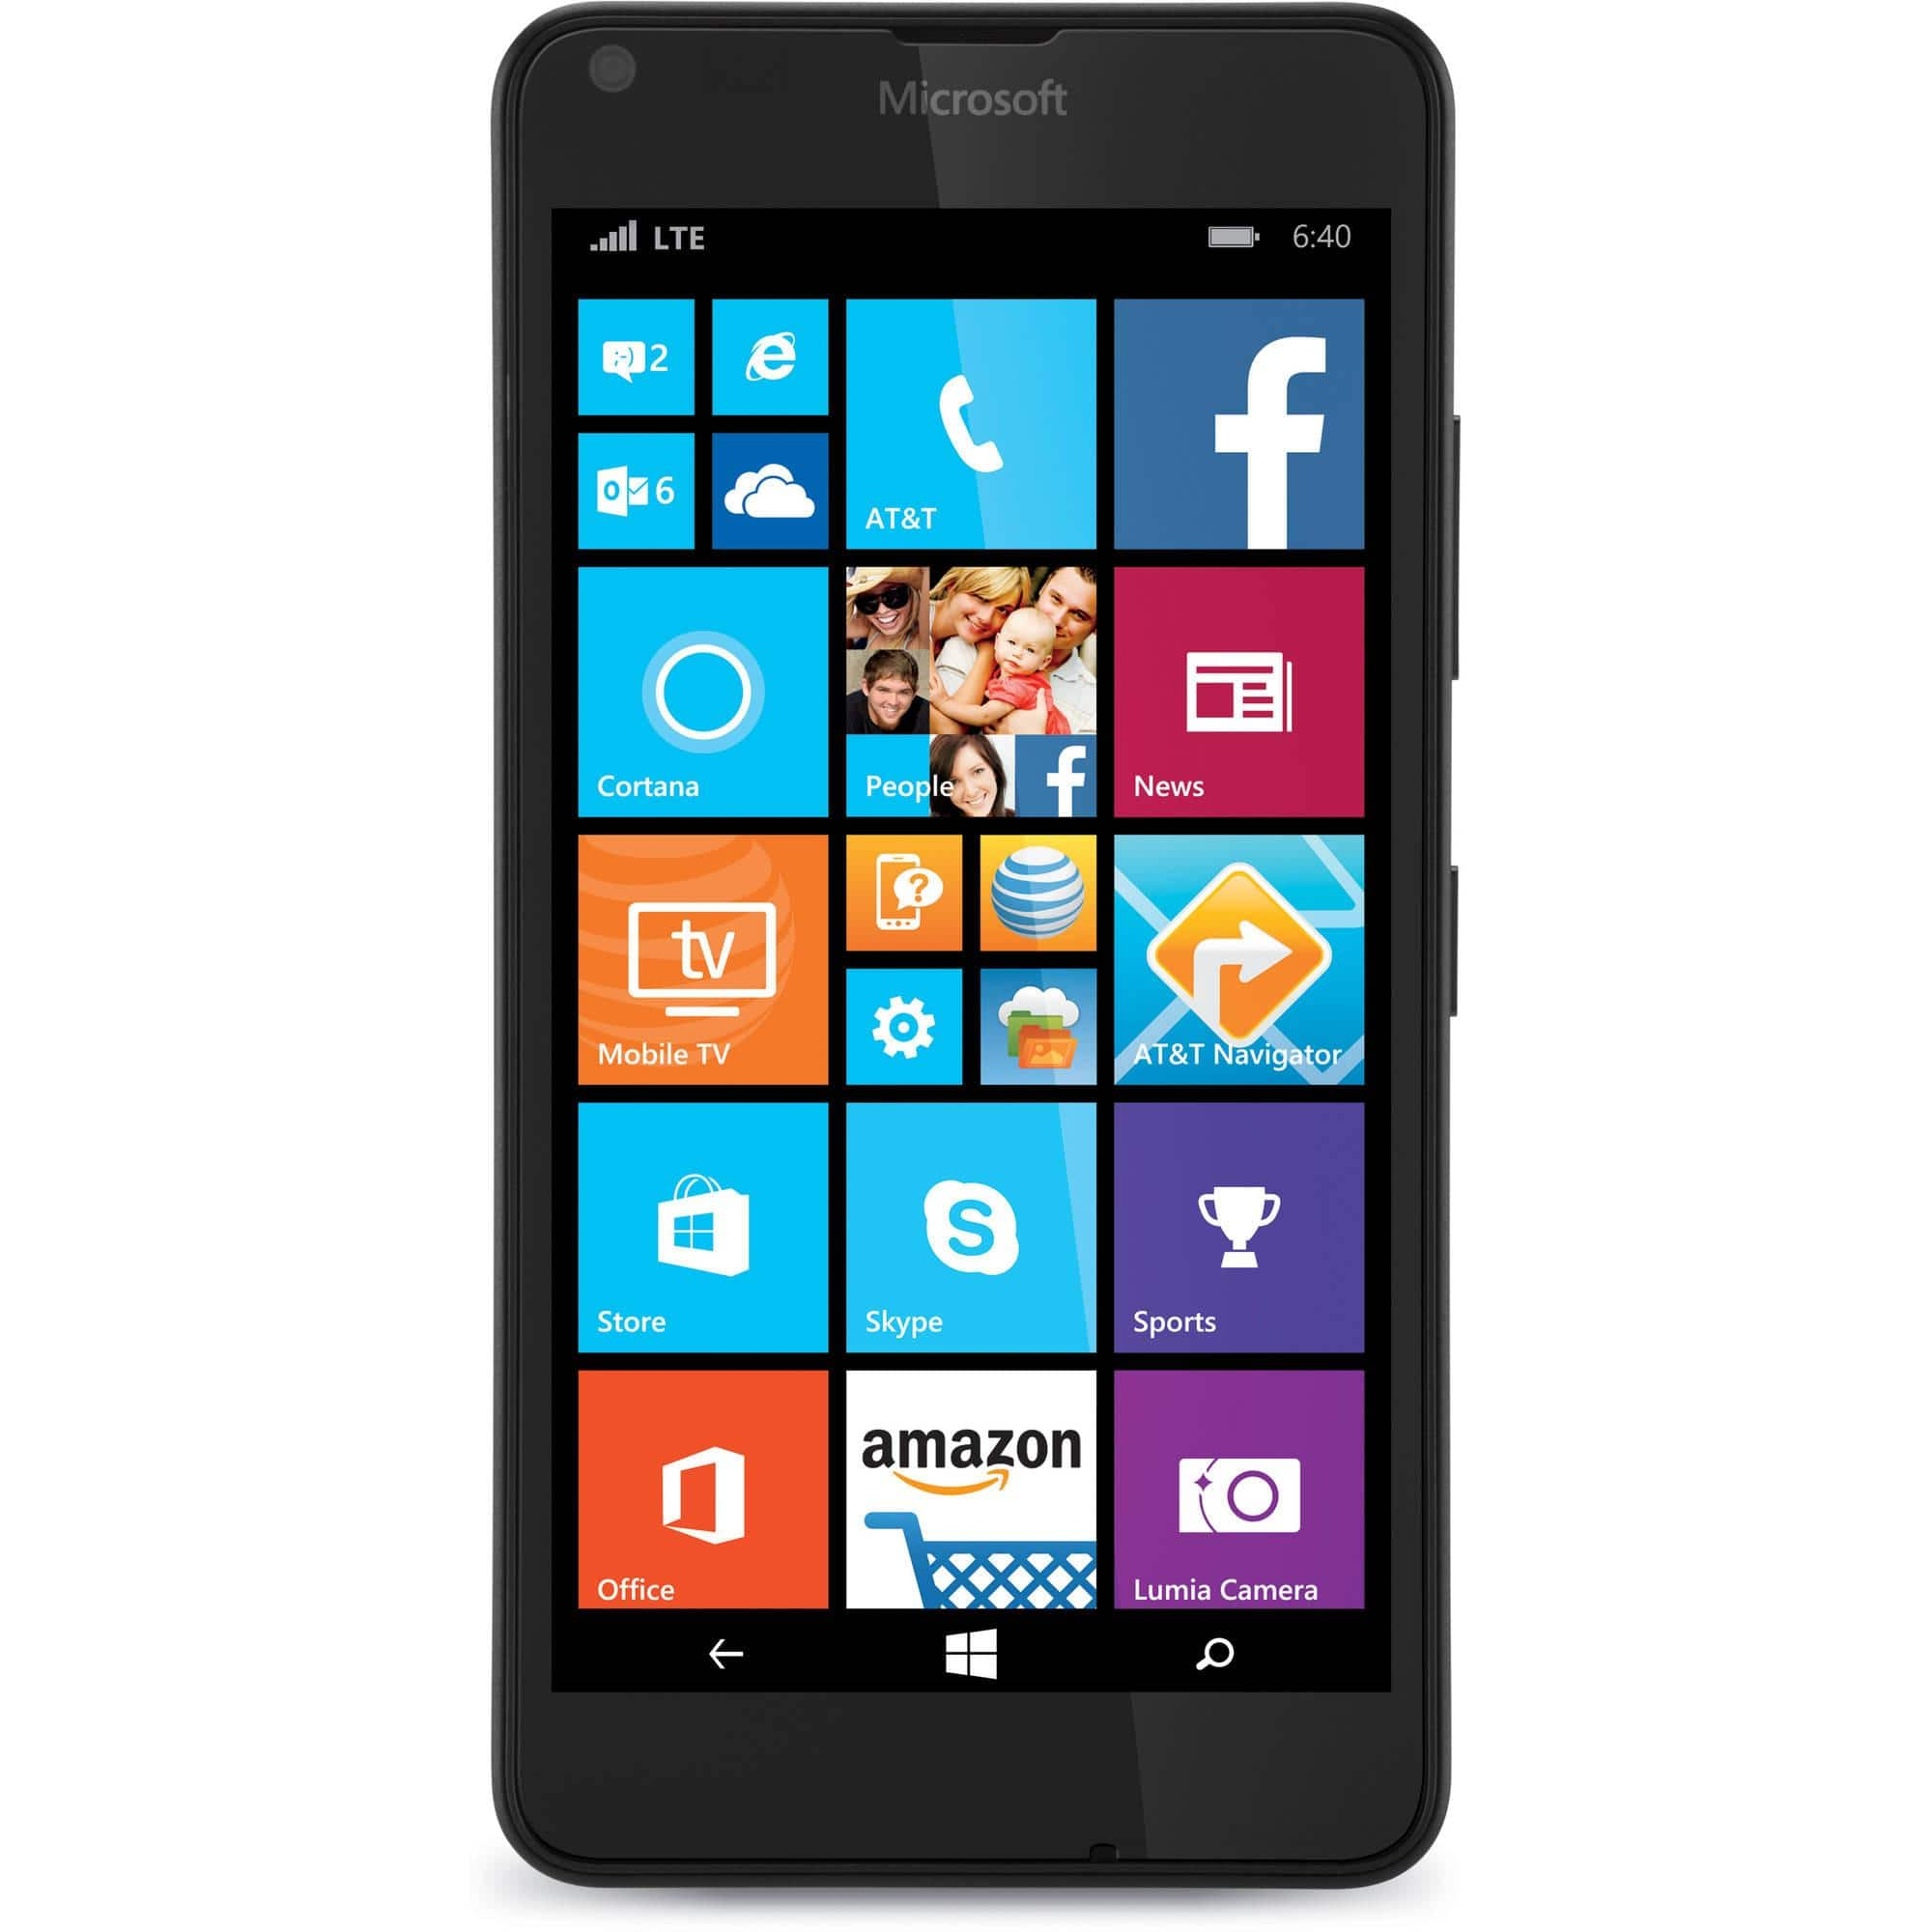 BF Price - Microsoft Lumia 640 AT&T for $30 @ Walmart (Only In Store Now)